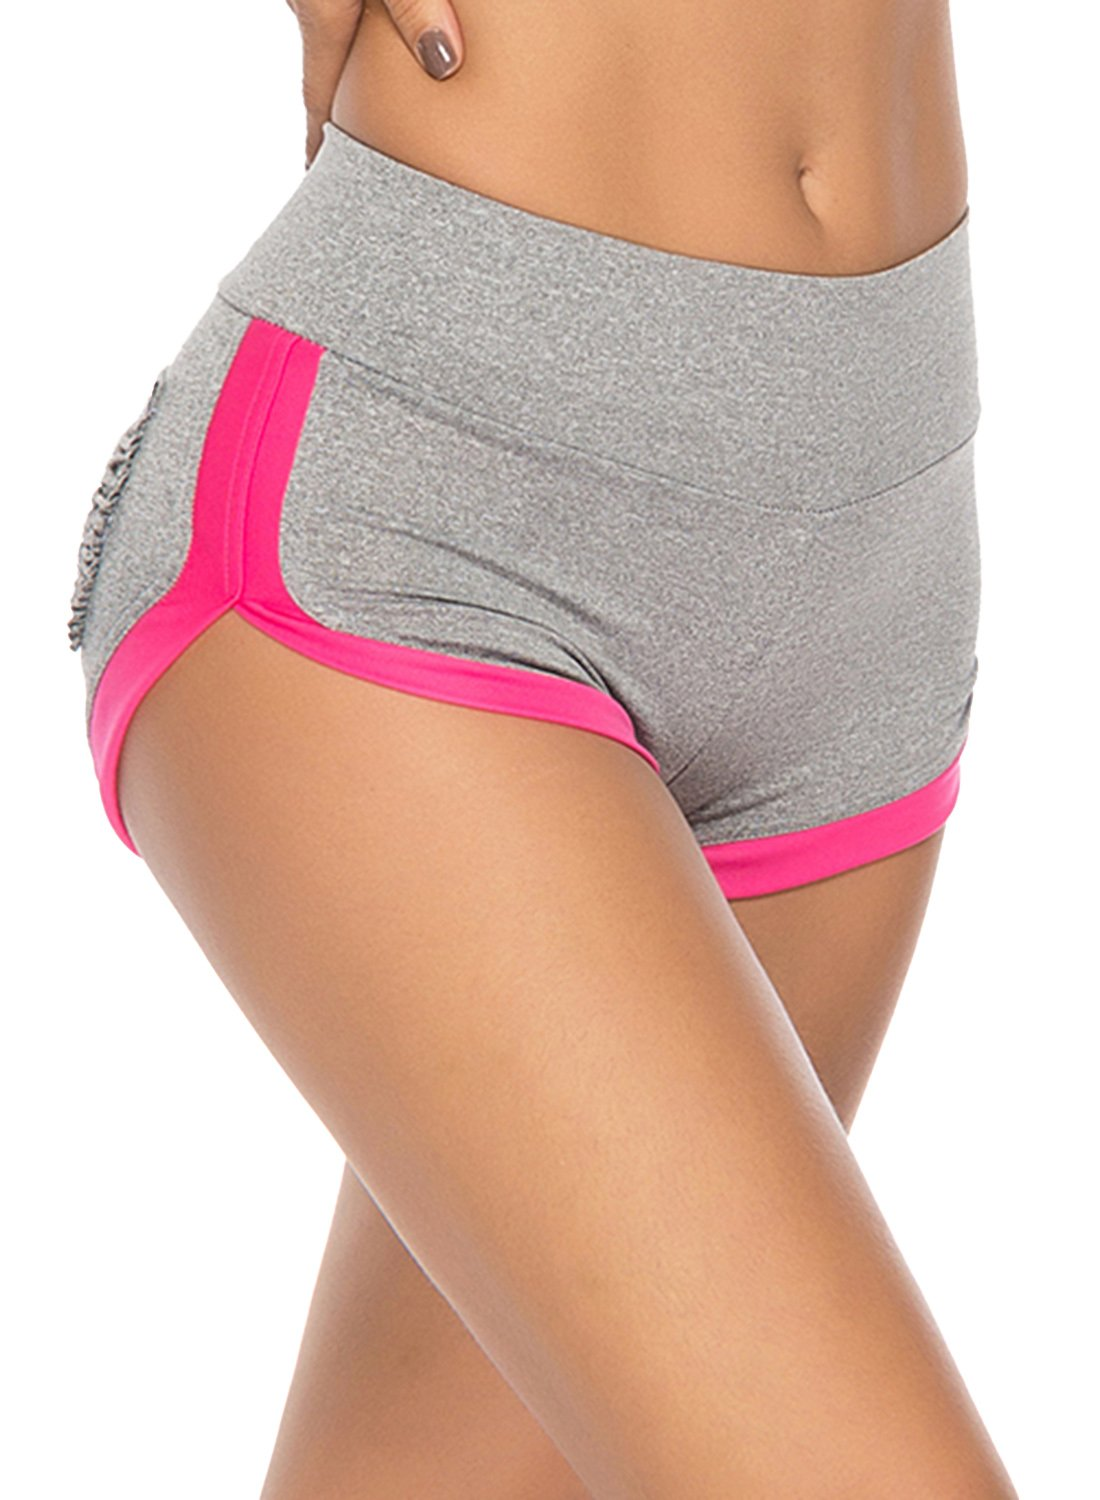 Women's Ruched Pocket Contrast Color Yoga Shorts